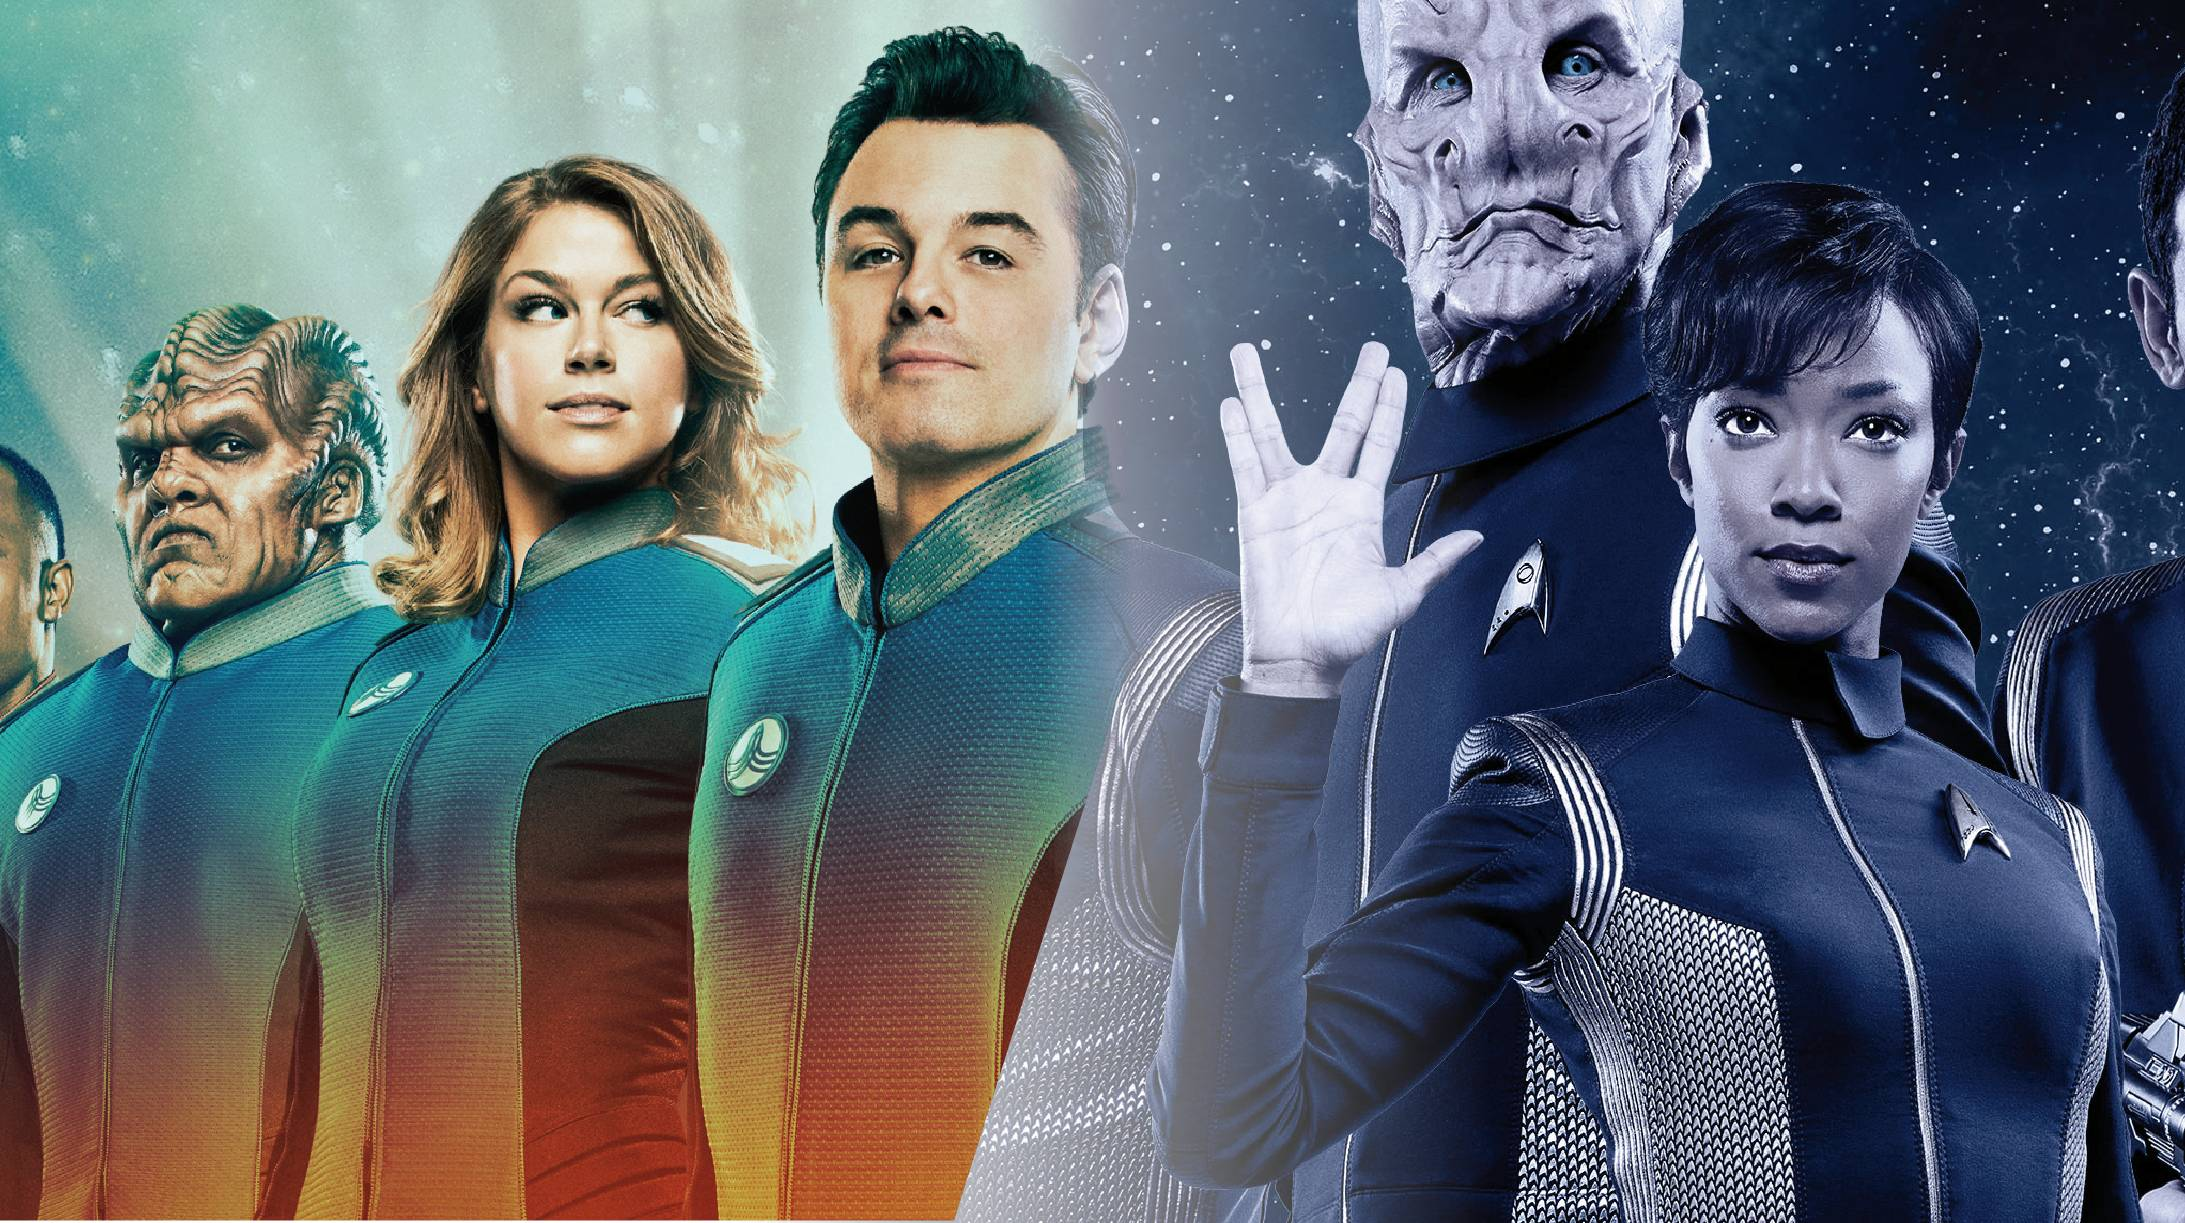 https://www.mirf.ru/wp-content/uploads/2017/12/Discovery-Orville2.jpg